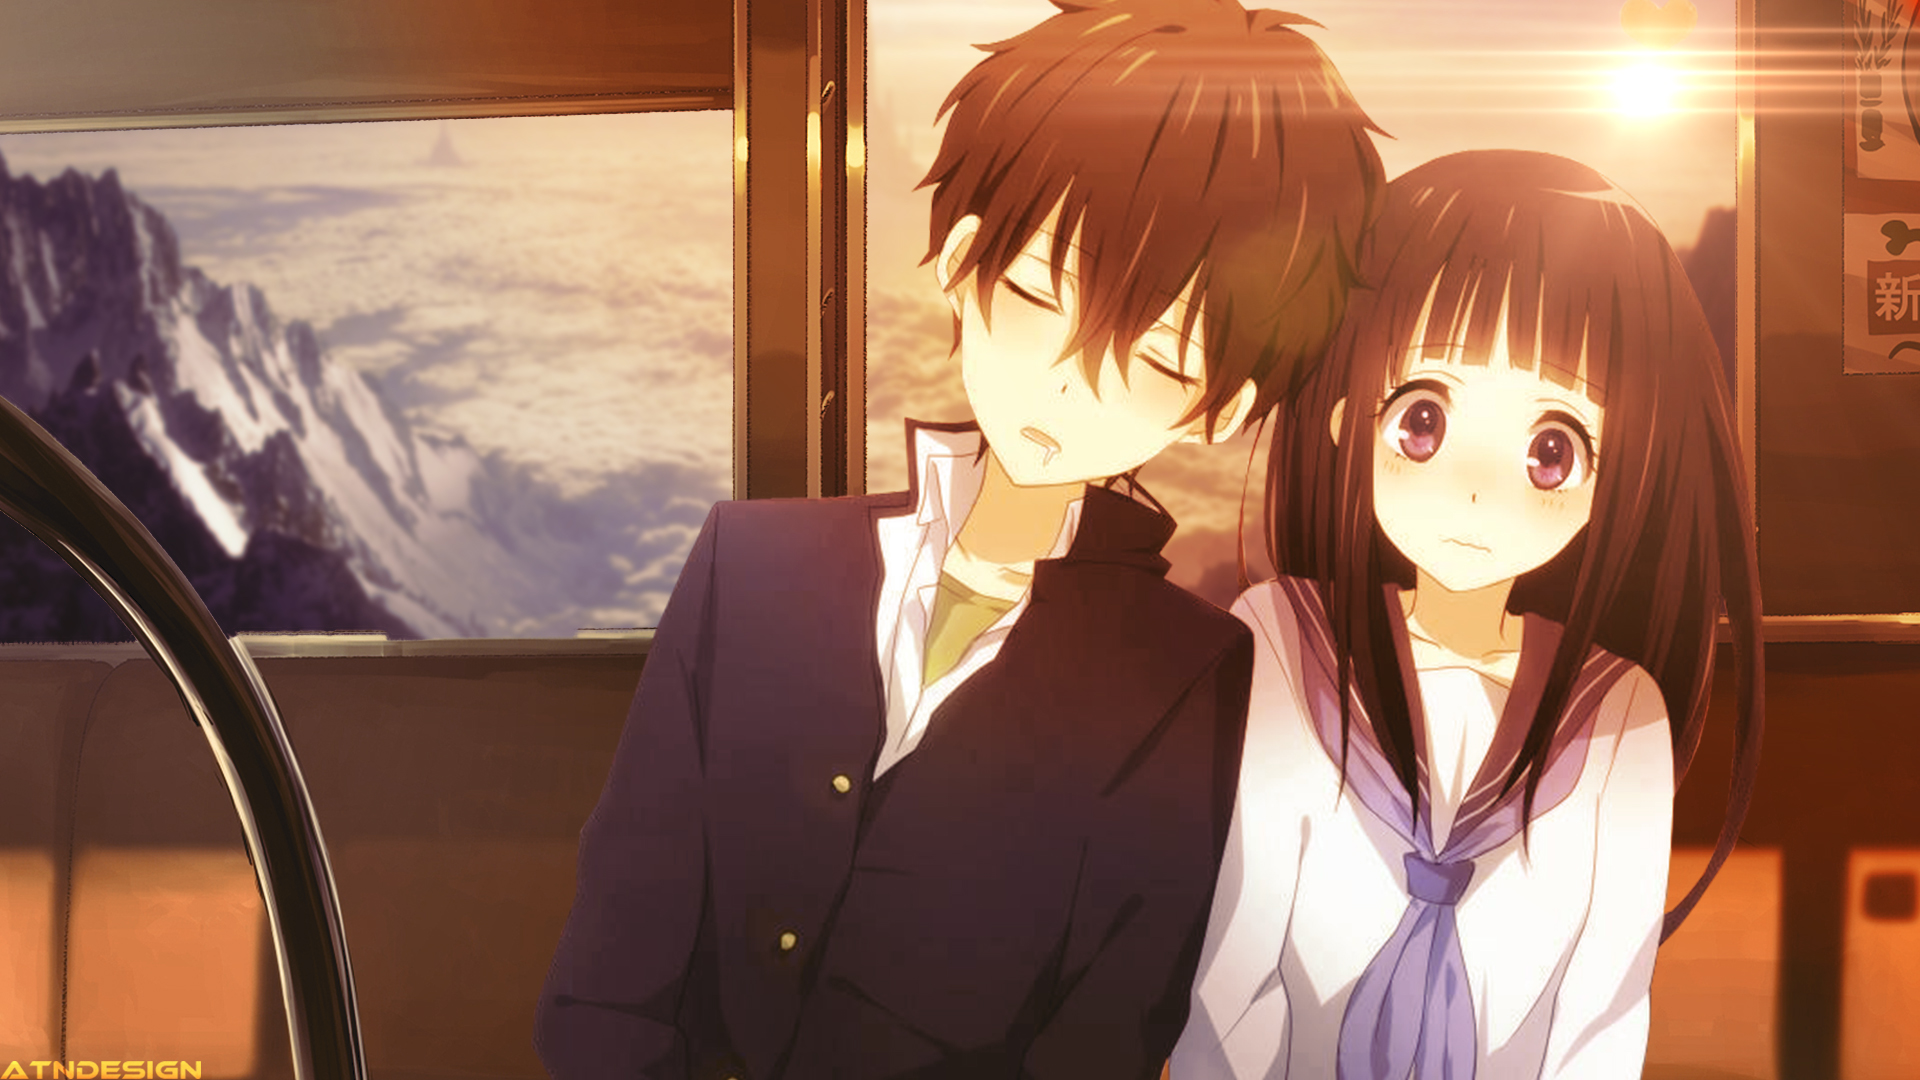 Cute Anime Couple Desktop Wallpapers | PixelsTalk Net